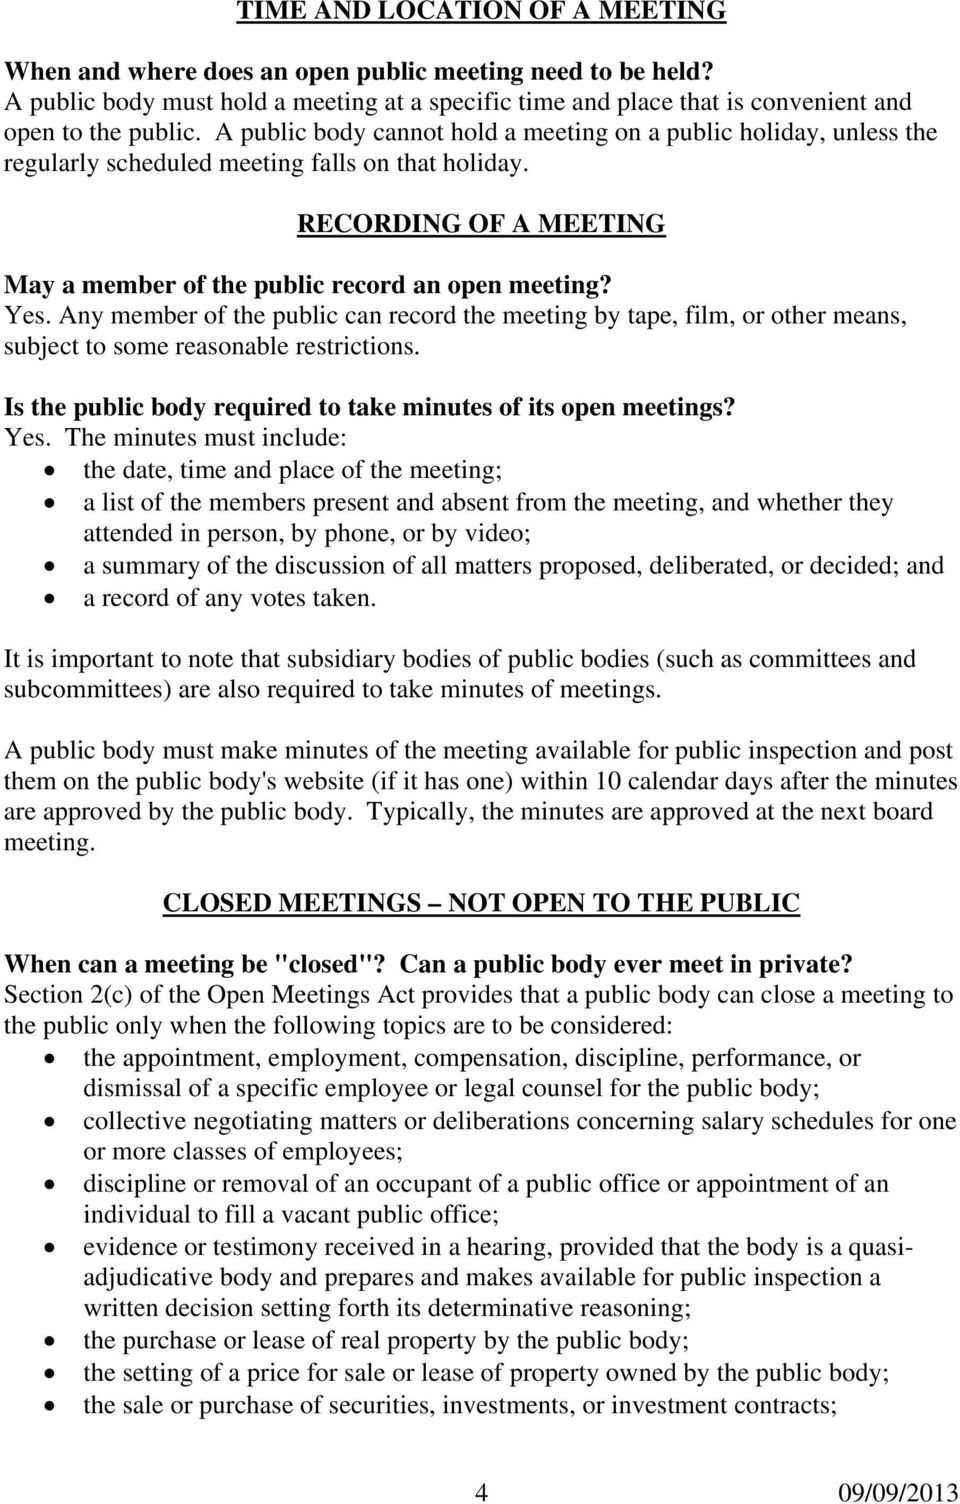 Any member of the public can record the meeting by tape, film, or other means, subject to some reasonable restrictions. Is the public body required to take minutes of its open meetings? Yes.